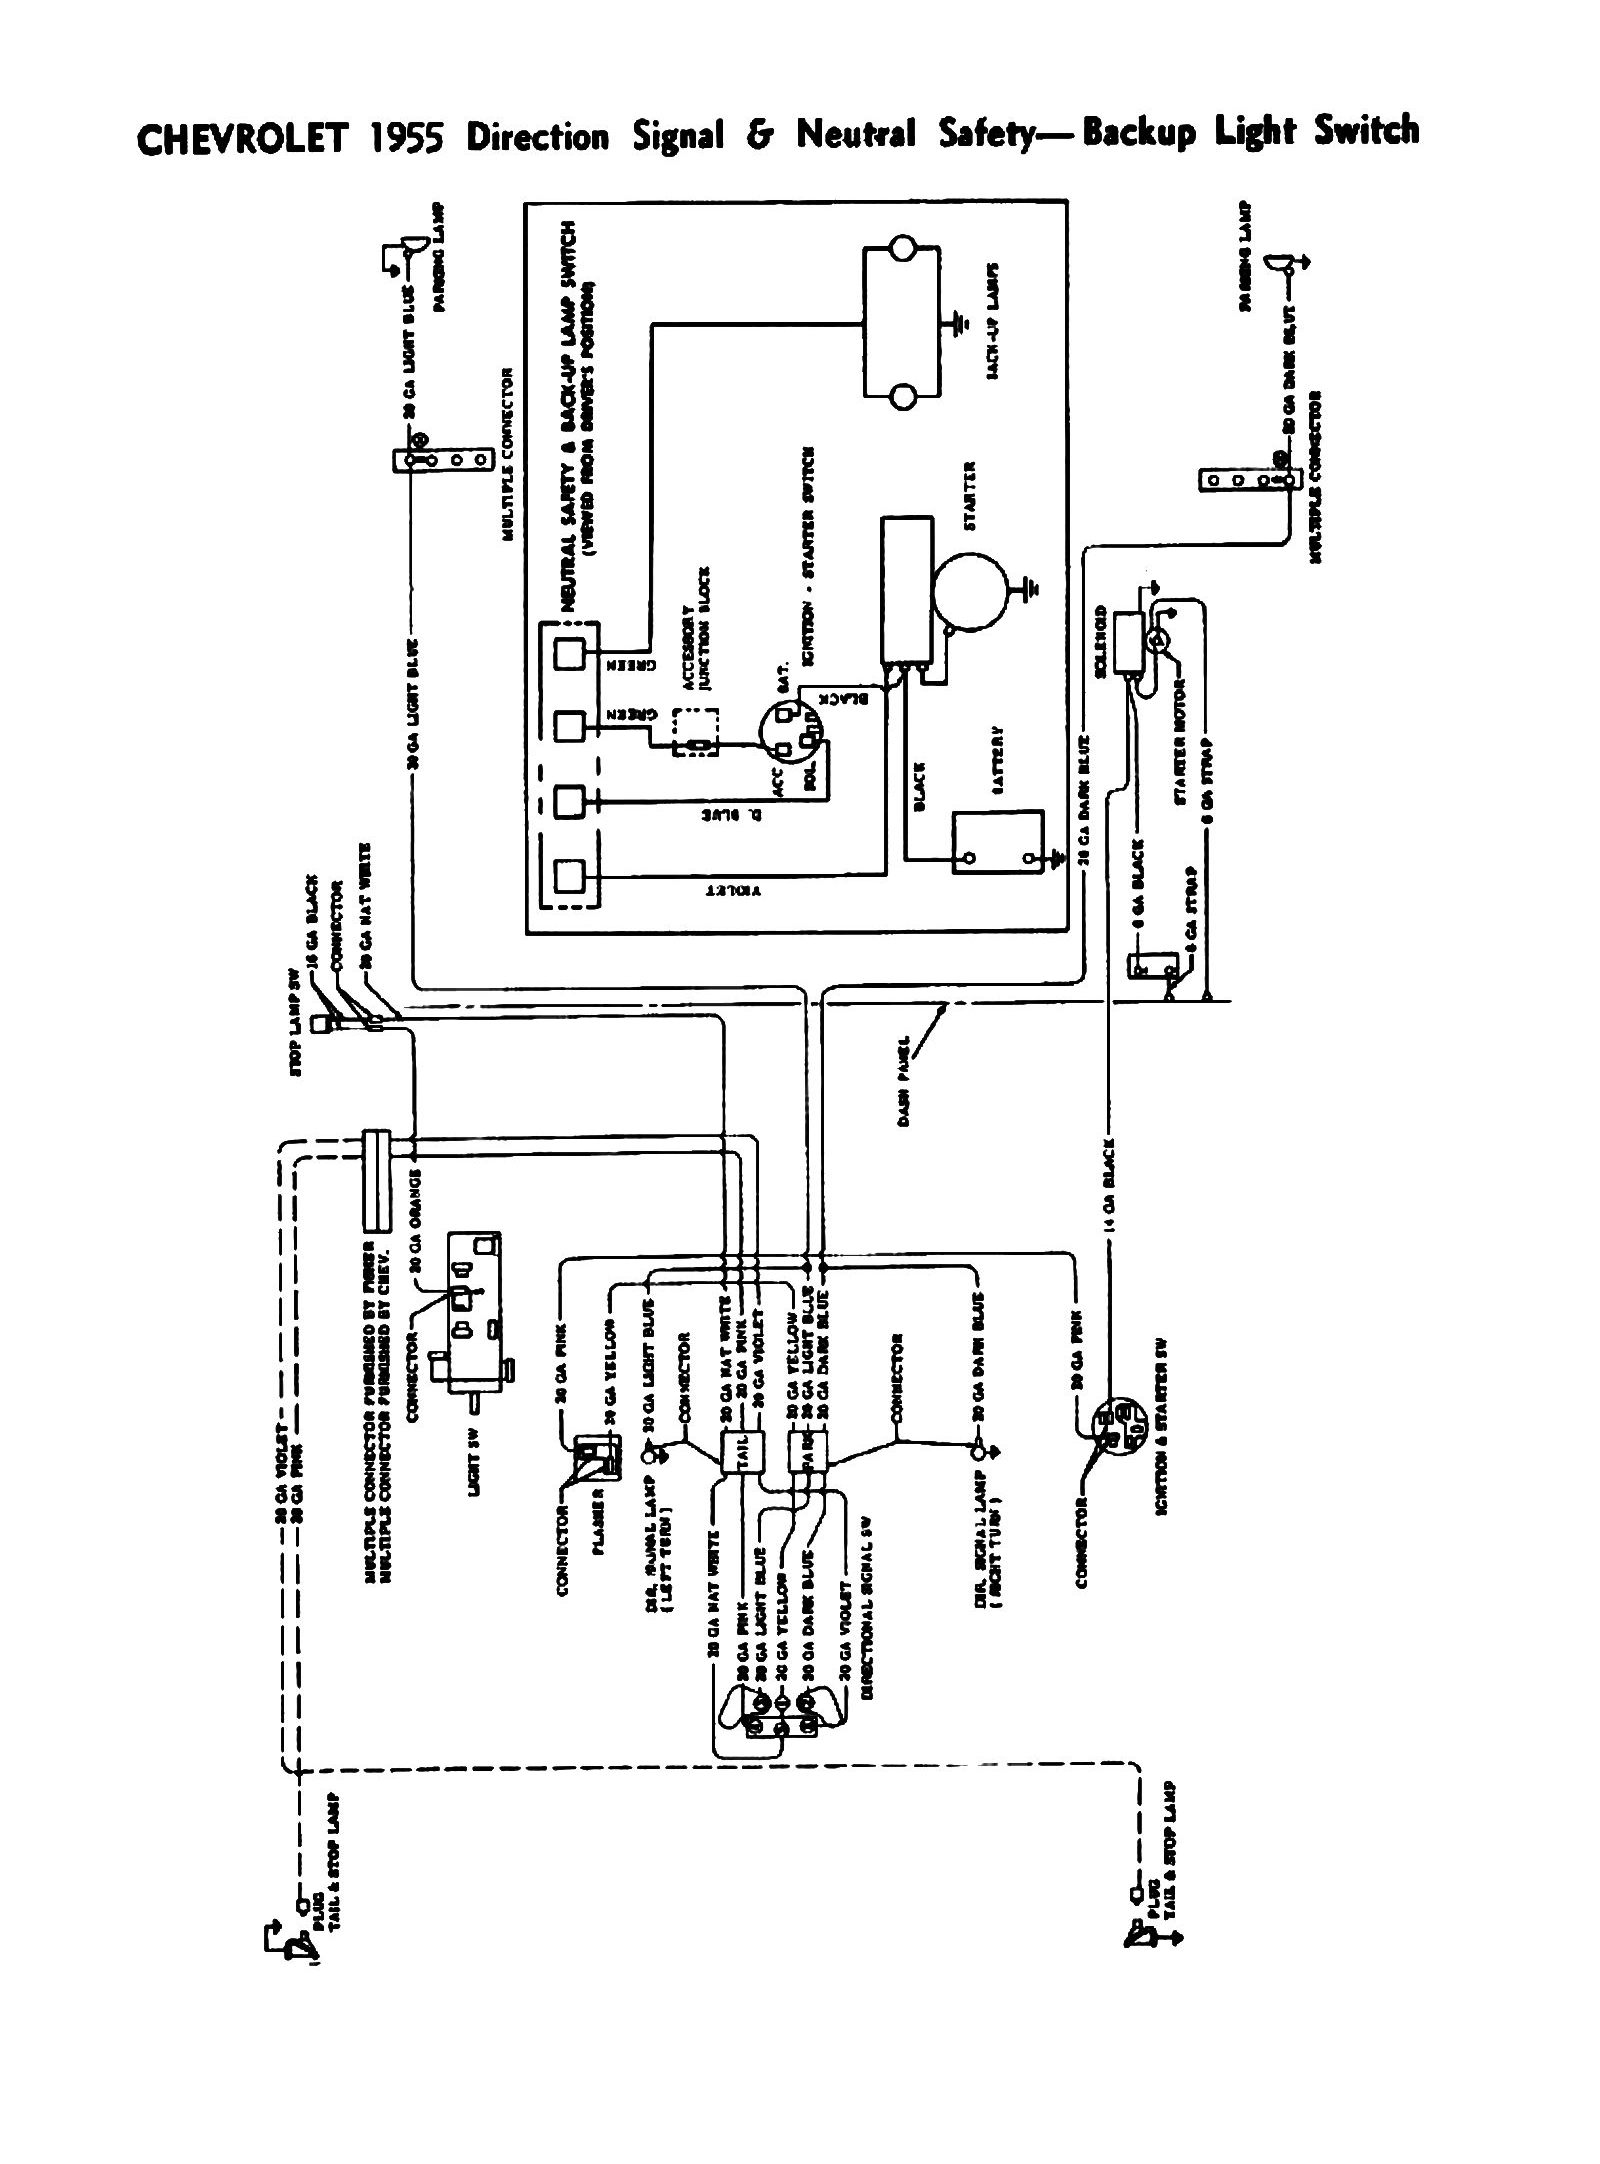 chevy spark wiring diagram chevy wiring diagrams instruction  1934 chevy wiring diagram schematic